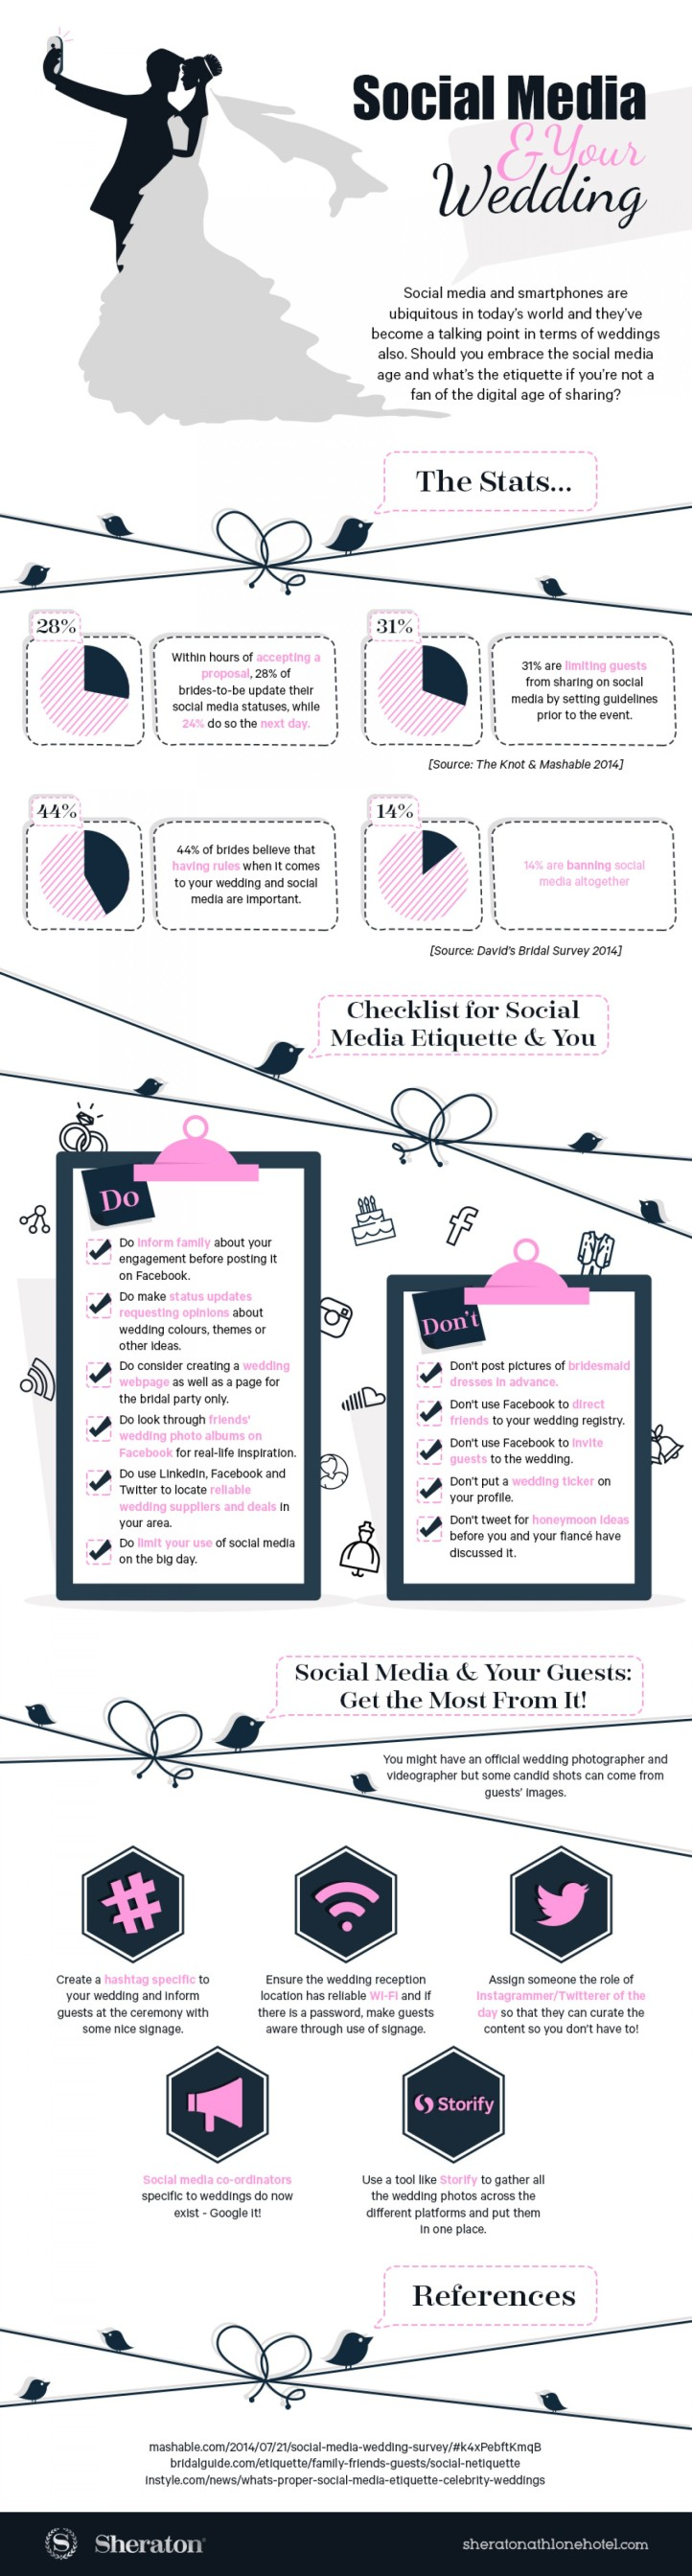 social-media-etiquette--weddings--infographic_5757c36590bf7_w1500